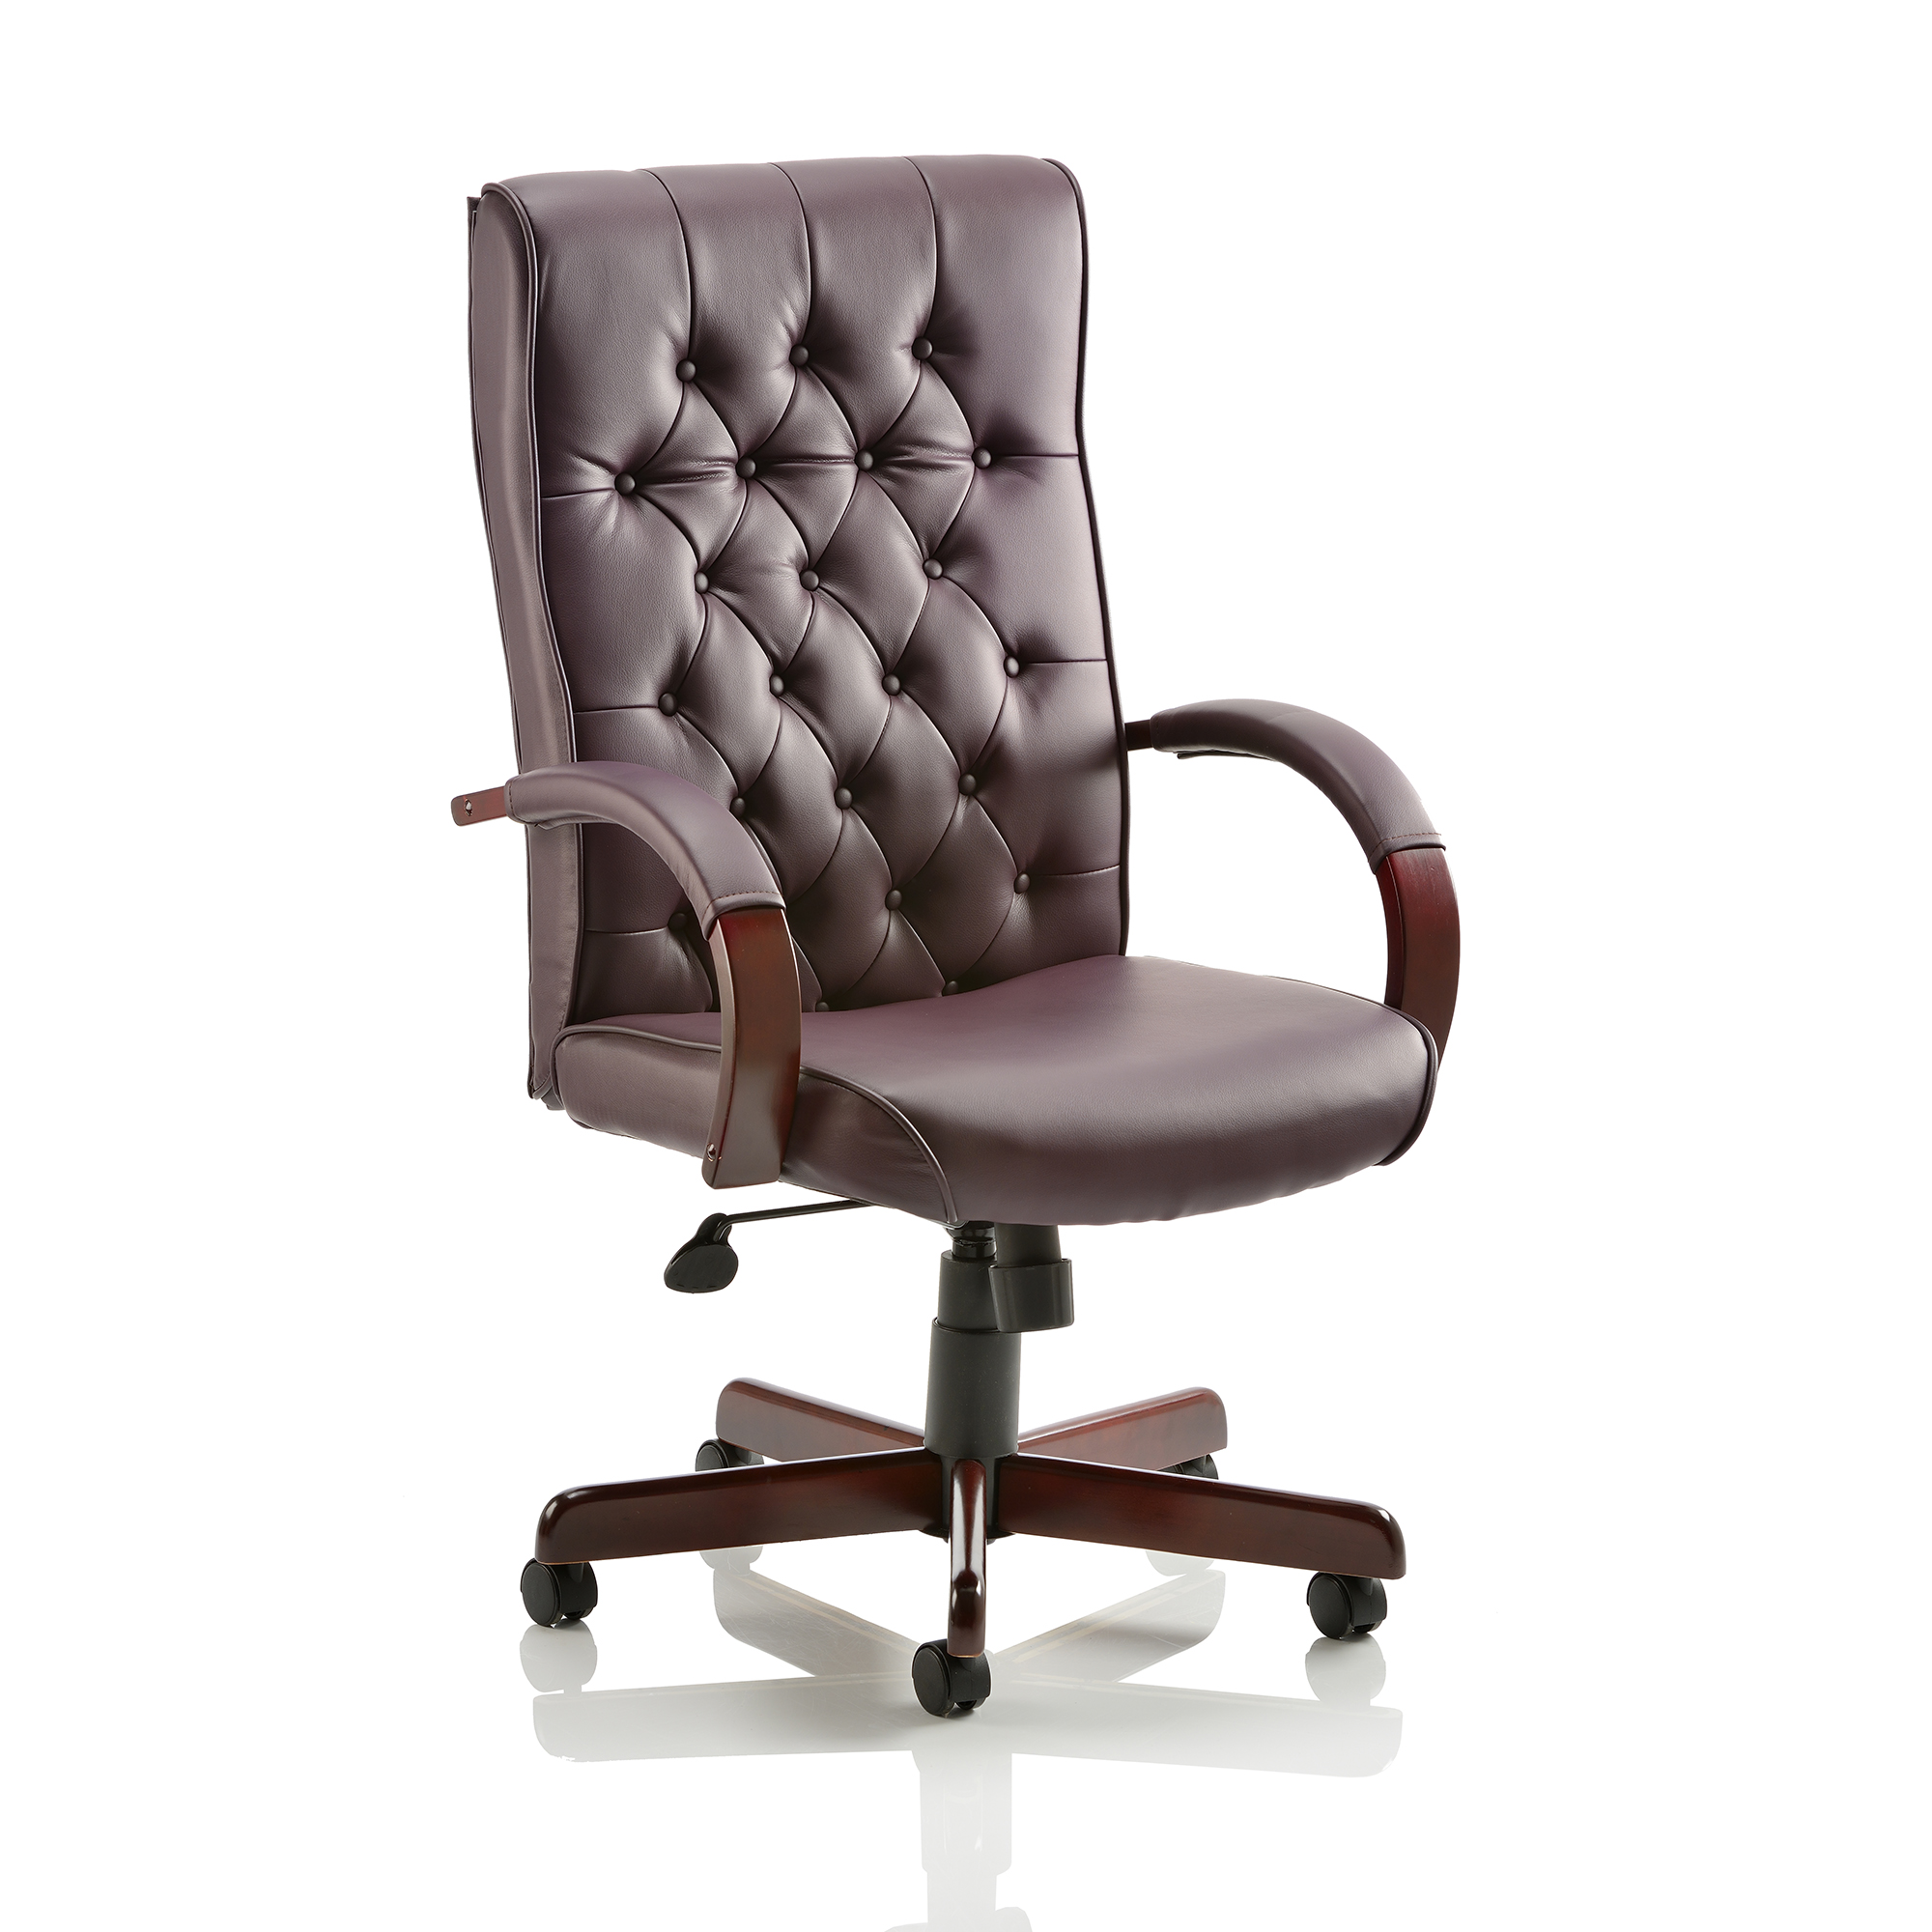 Executive seating Trexus Chesterfield Executive Chair With Arms Leather Burgundy Ref EX000004